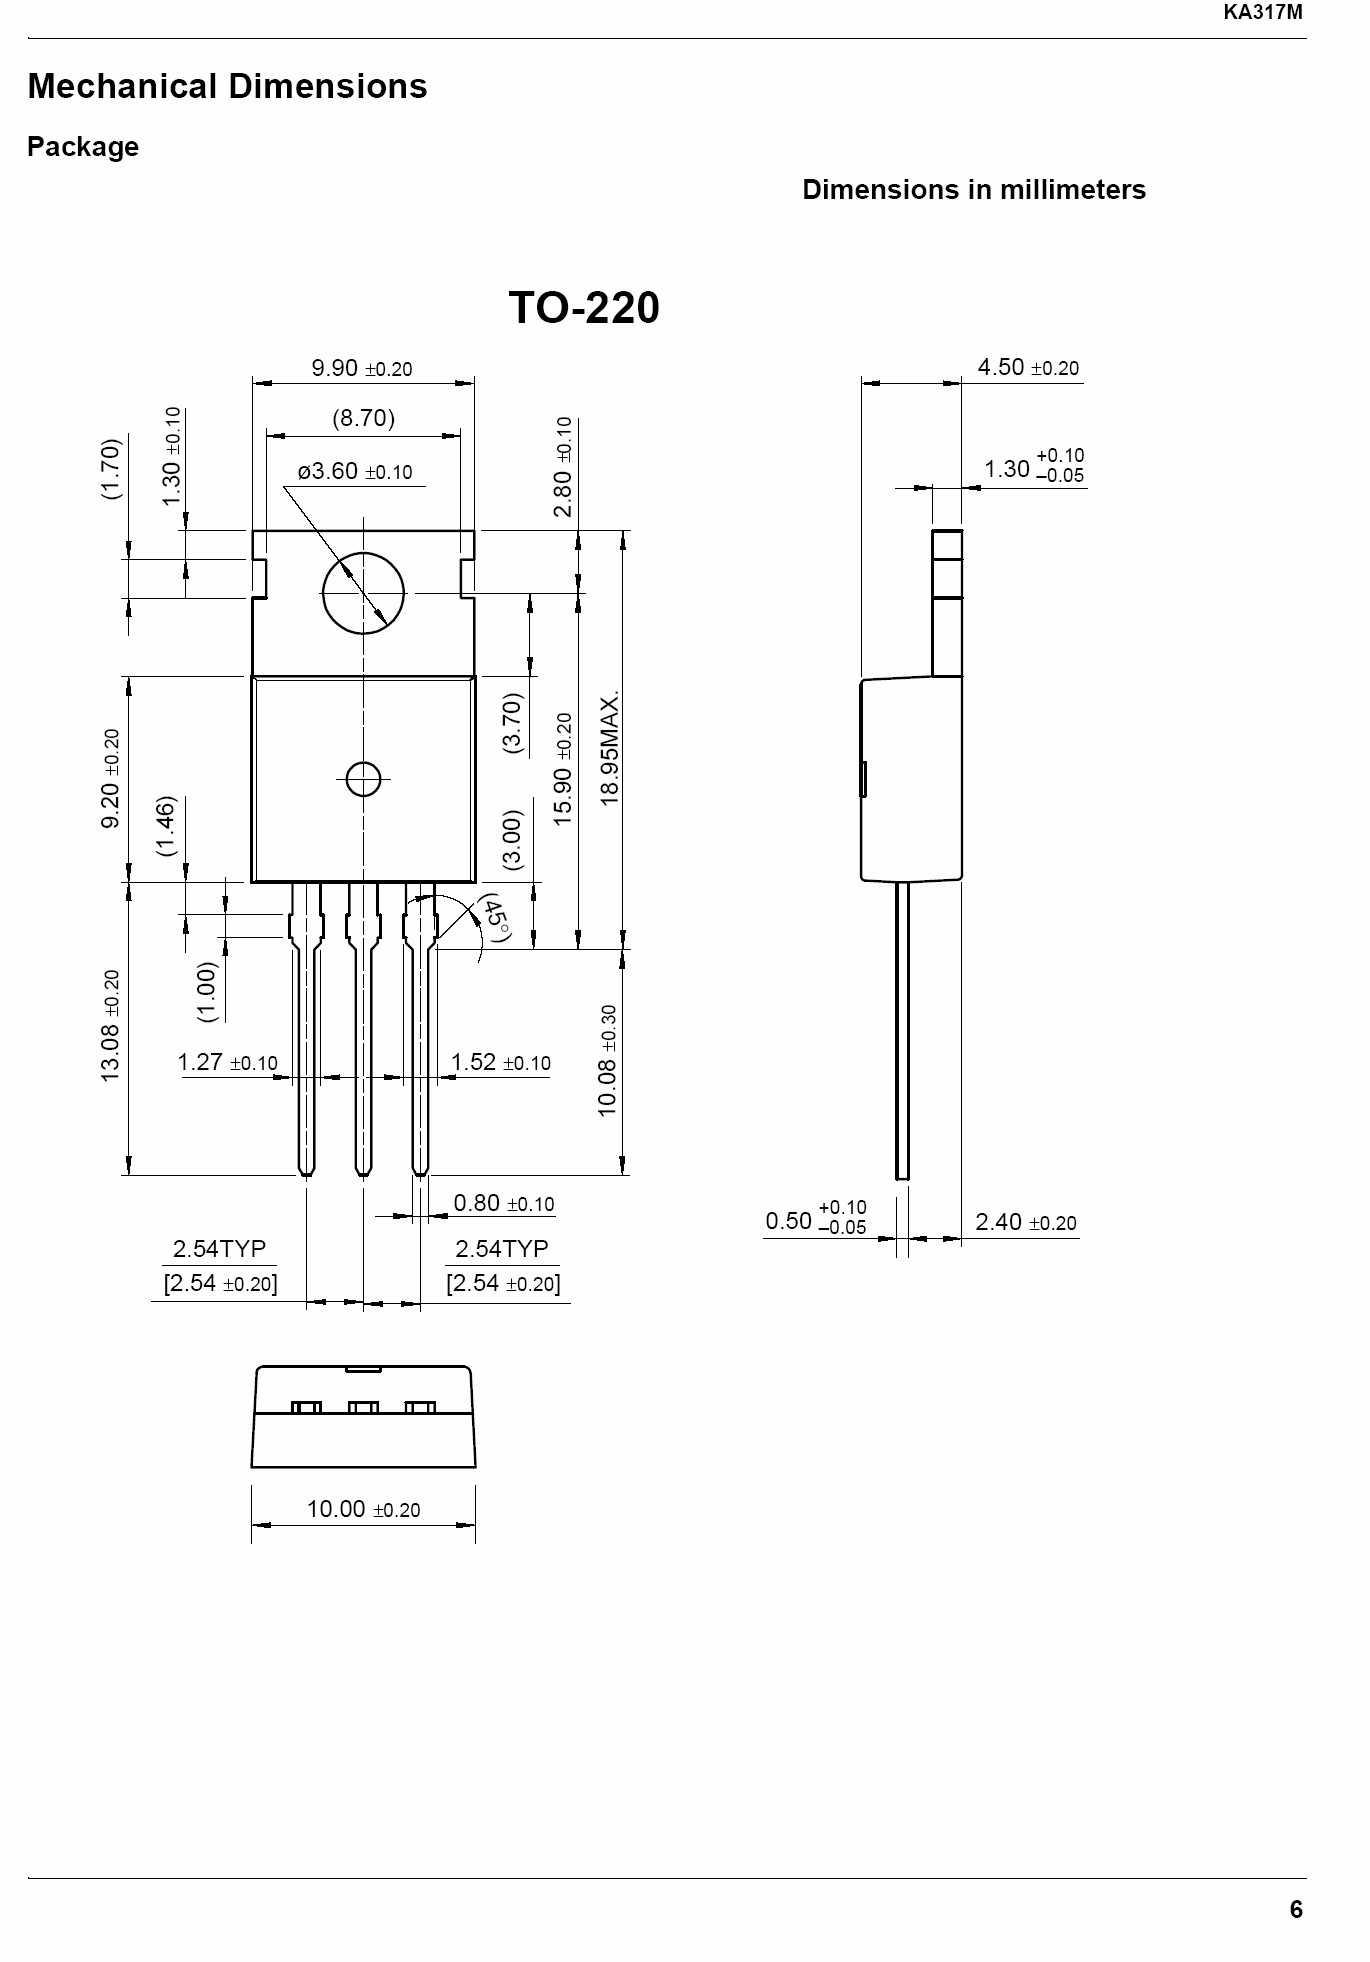 Ase 463q Final Paper Using Single Pole Double Throw Spdt Switches National Instruments Appendix I Ni Compact Vision System Datasheet